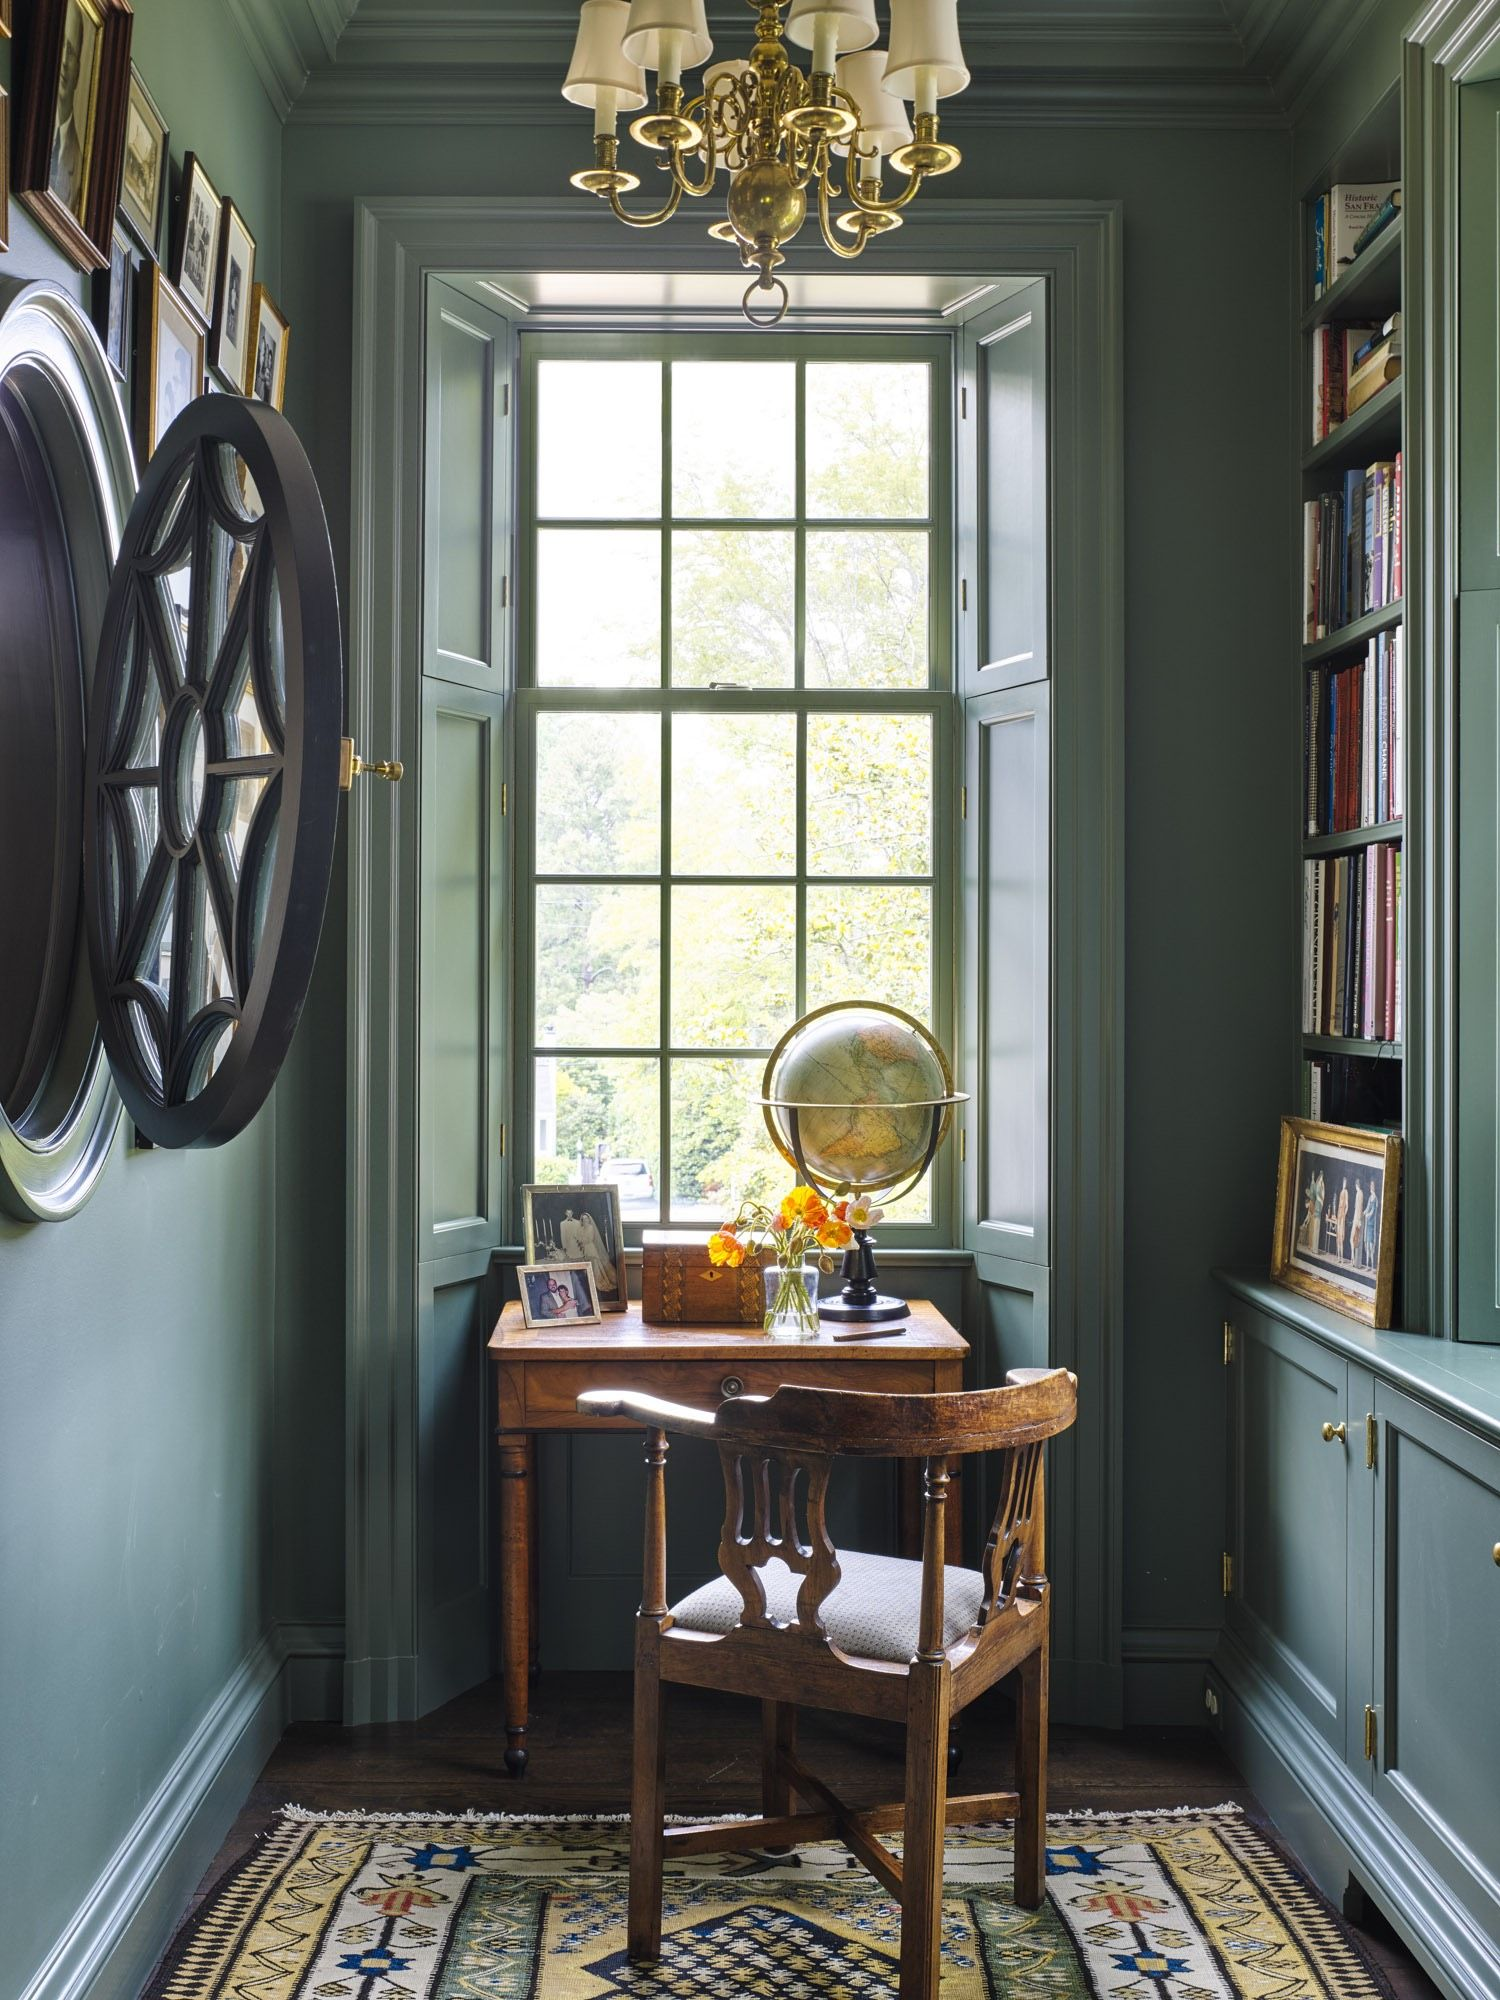 Window design for small house  house in birmingham  decoracion  pinterest  house window and